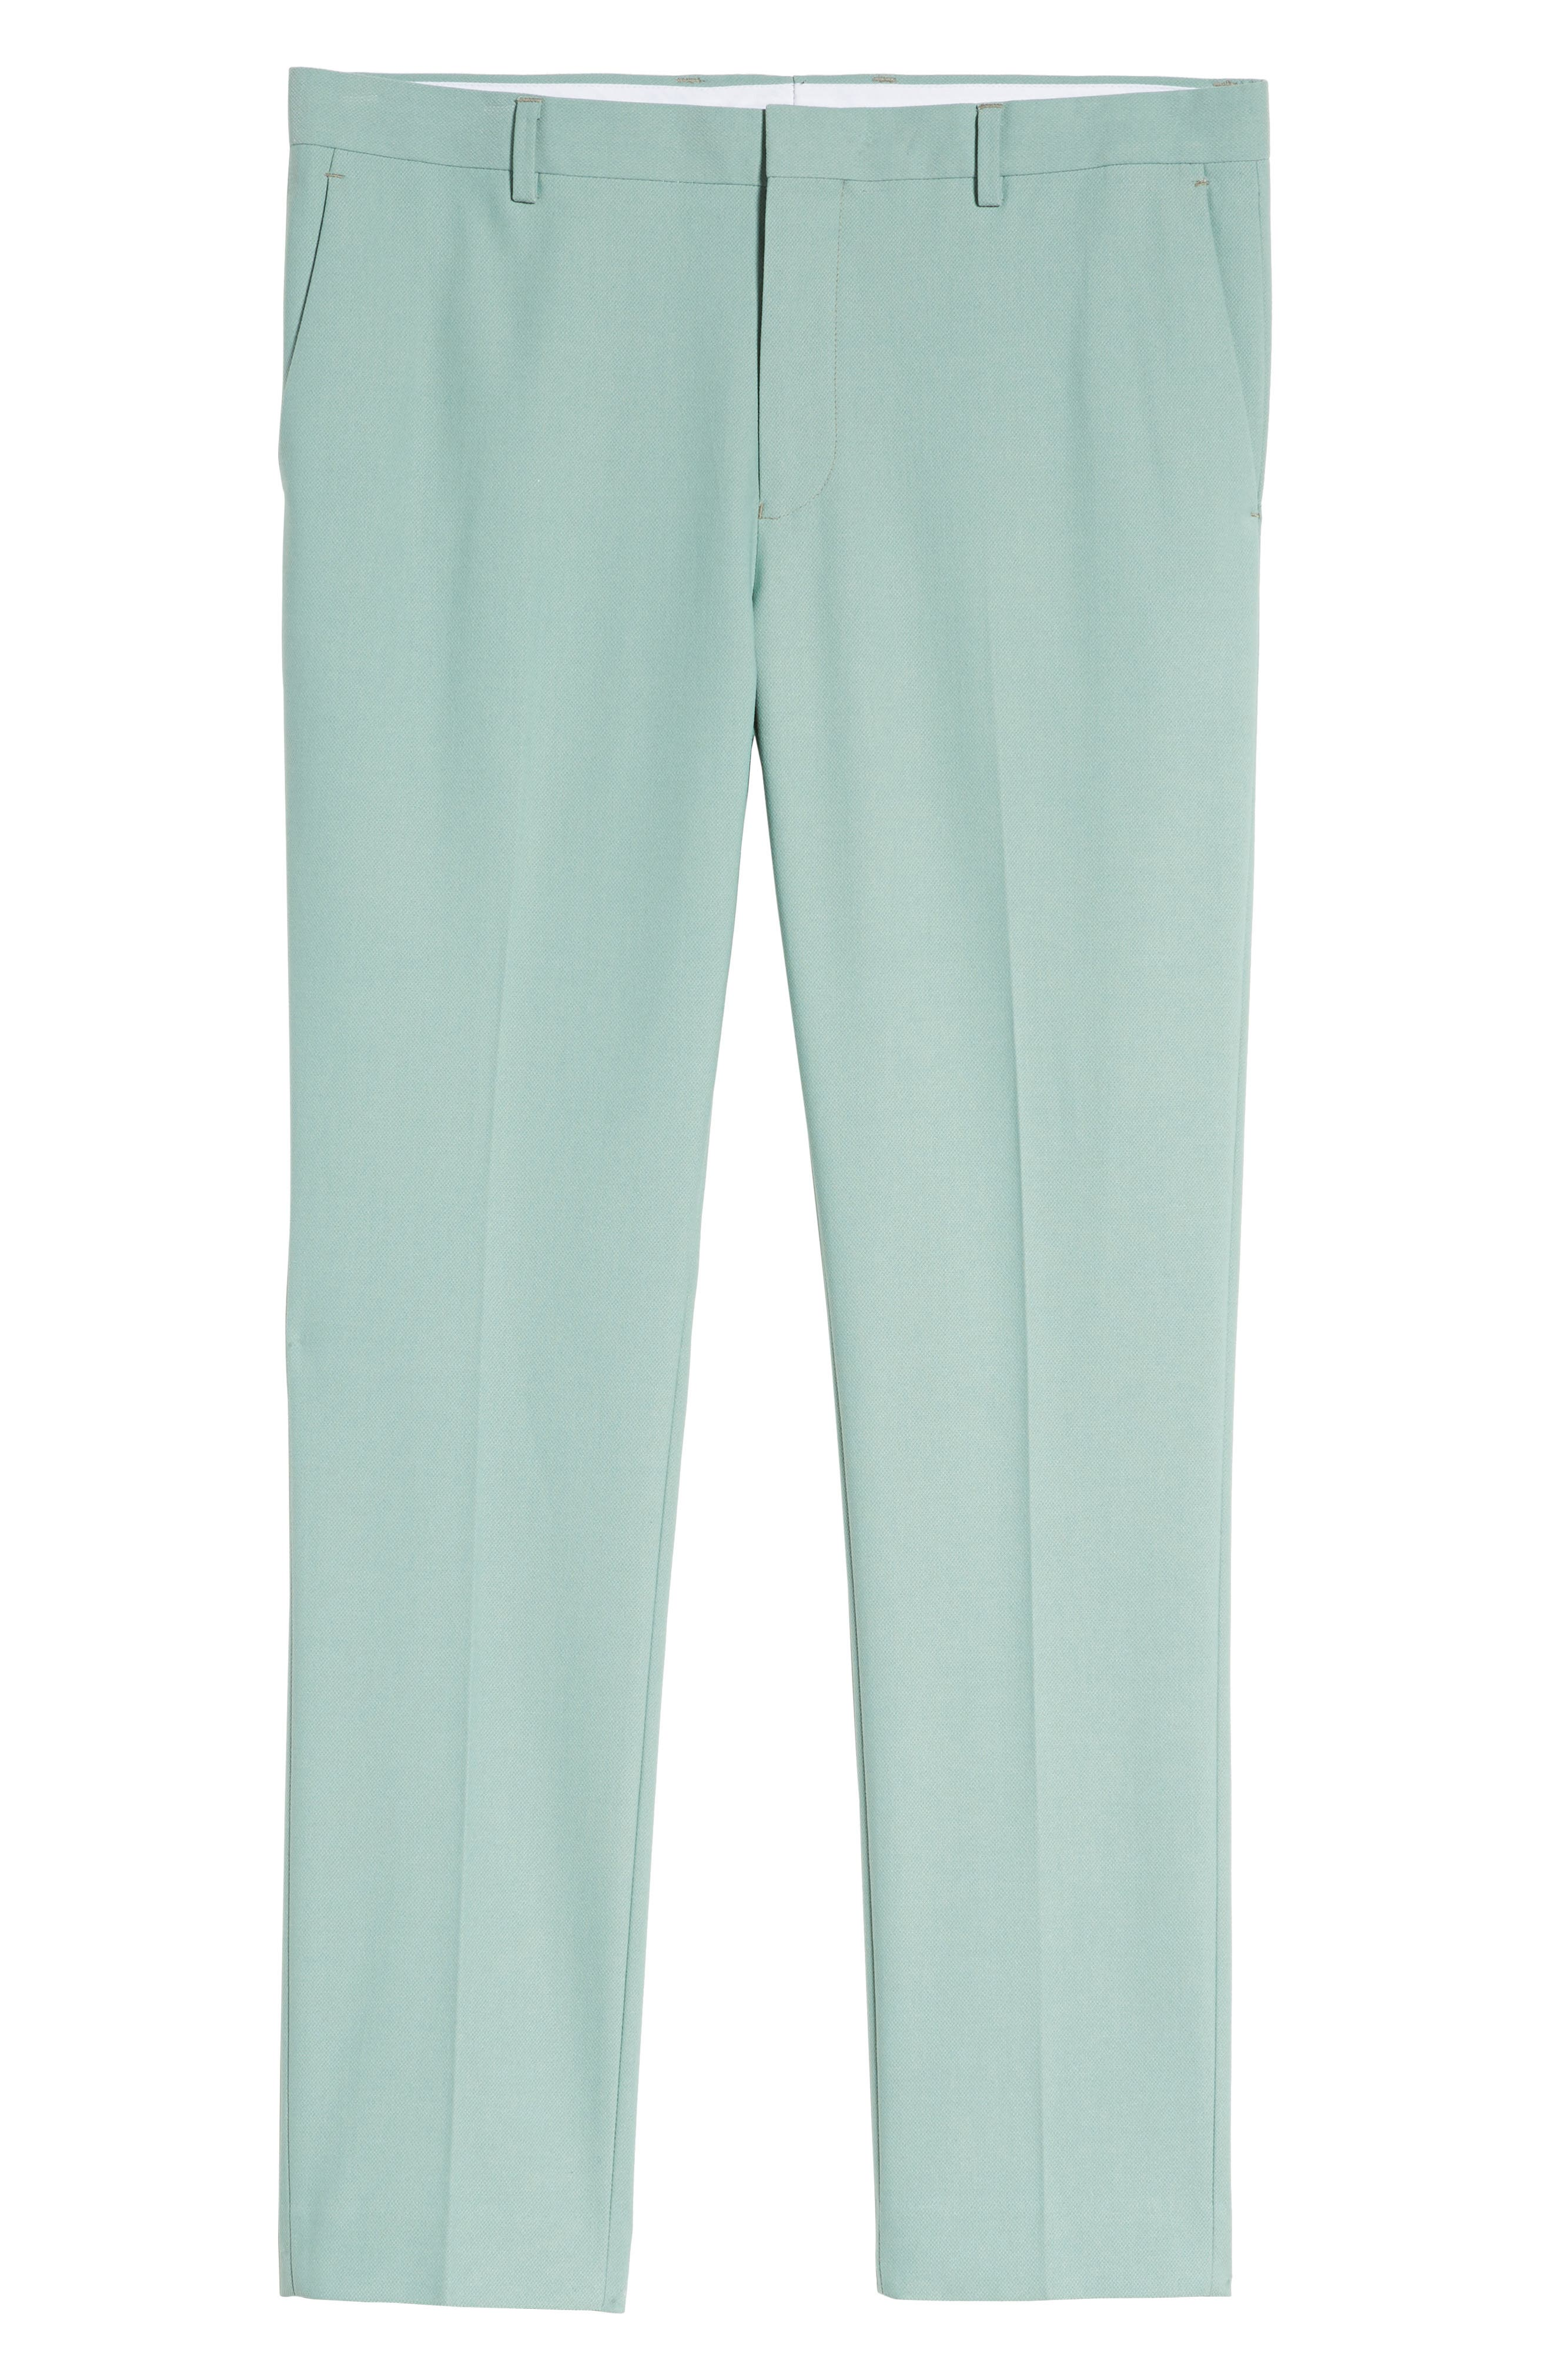 Skinny Fit Suit Trousers,                             Alternate thumbnail 11, color,